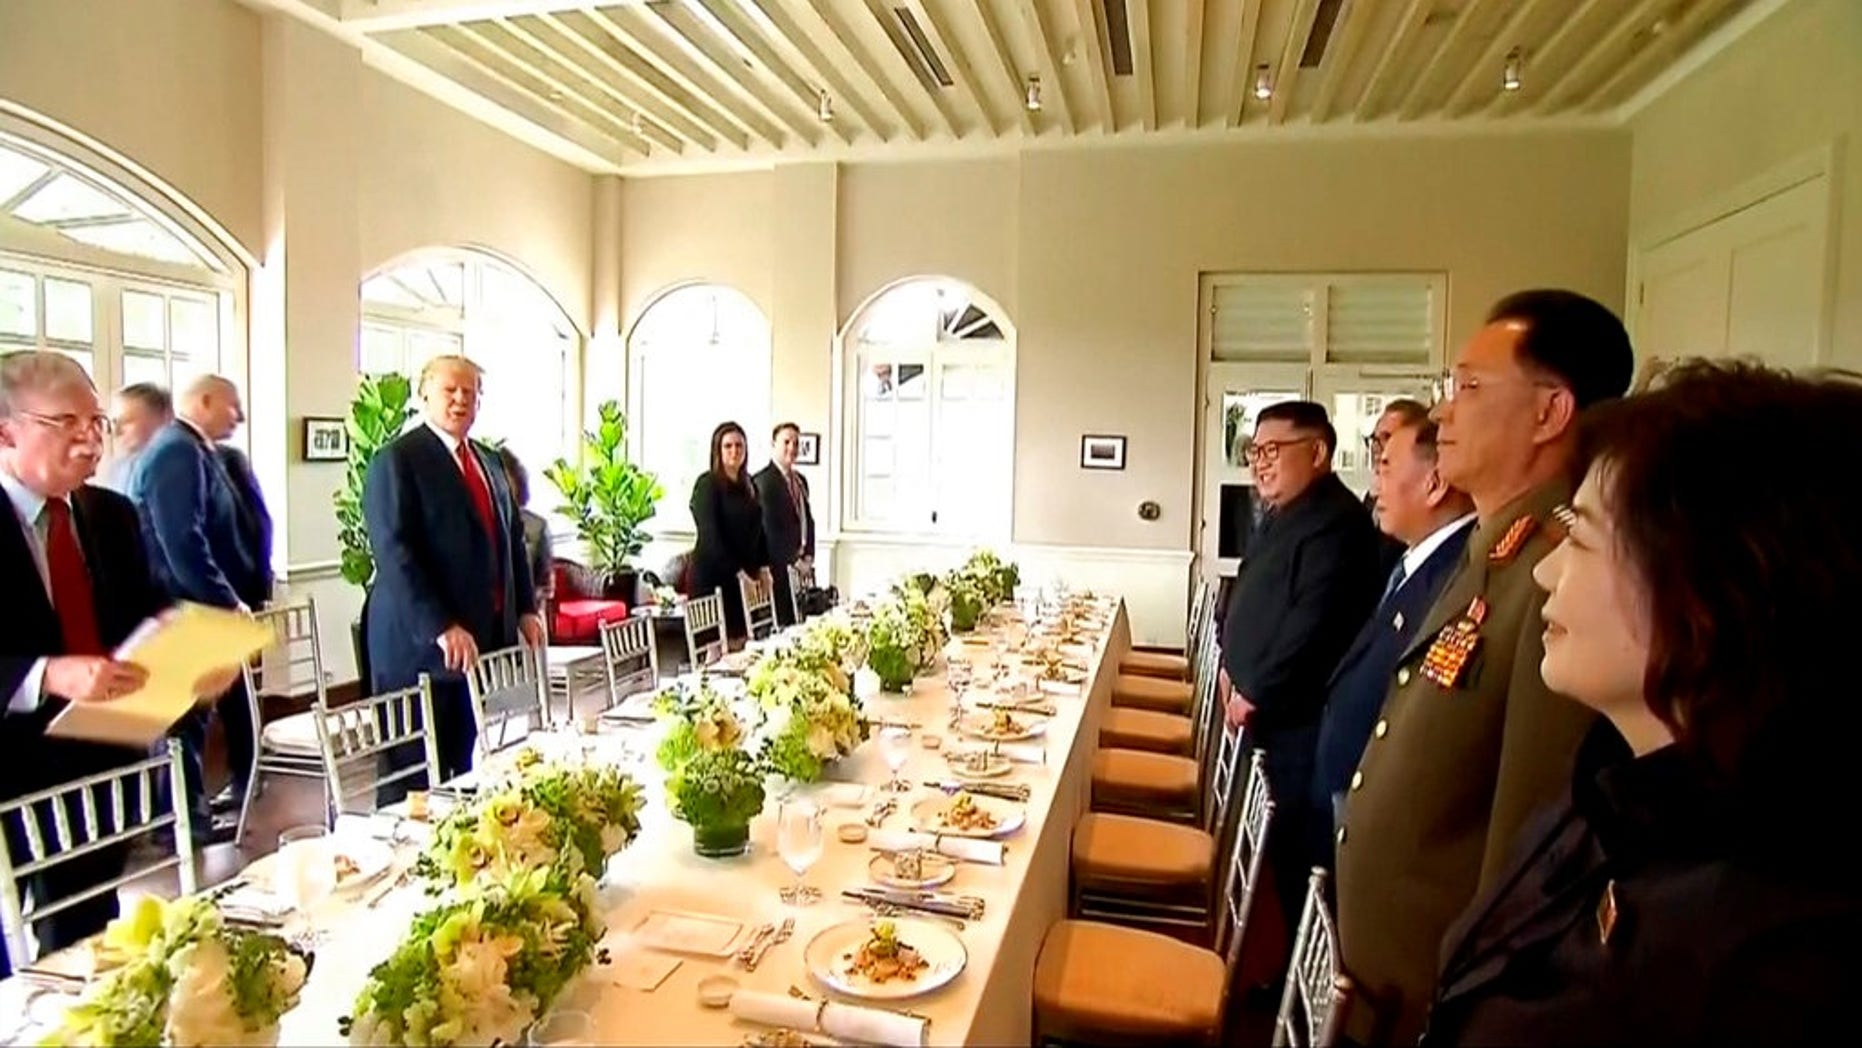 President Trump, Kim Jong Un and their aides arrive for a working lunch at Capella Hotel in Singapore.